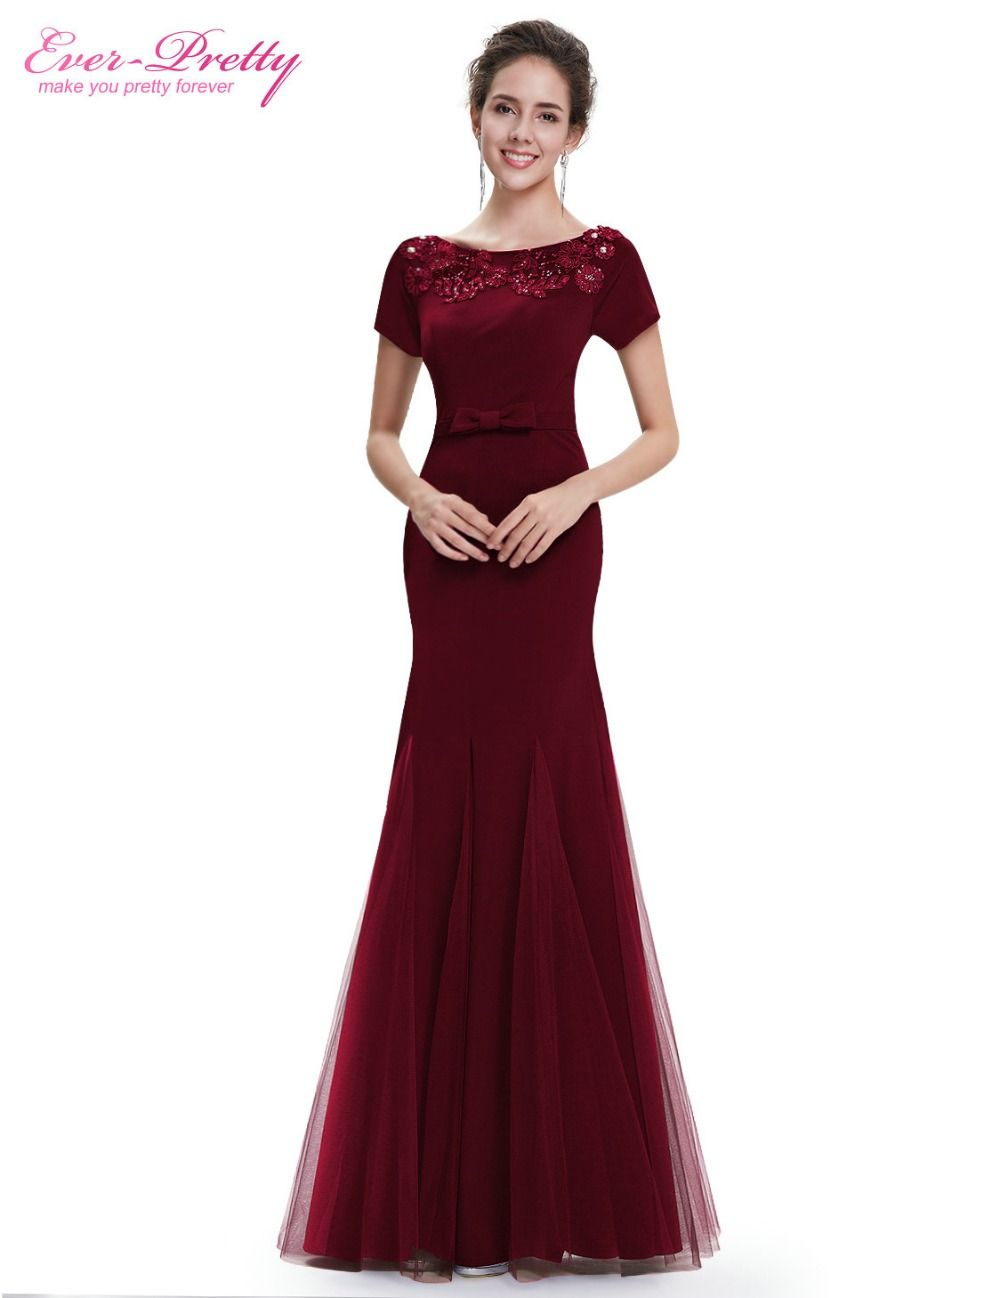 Ever pretty evening dresses he womenus elegant short sleeve